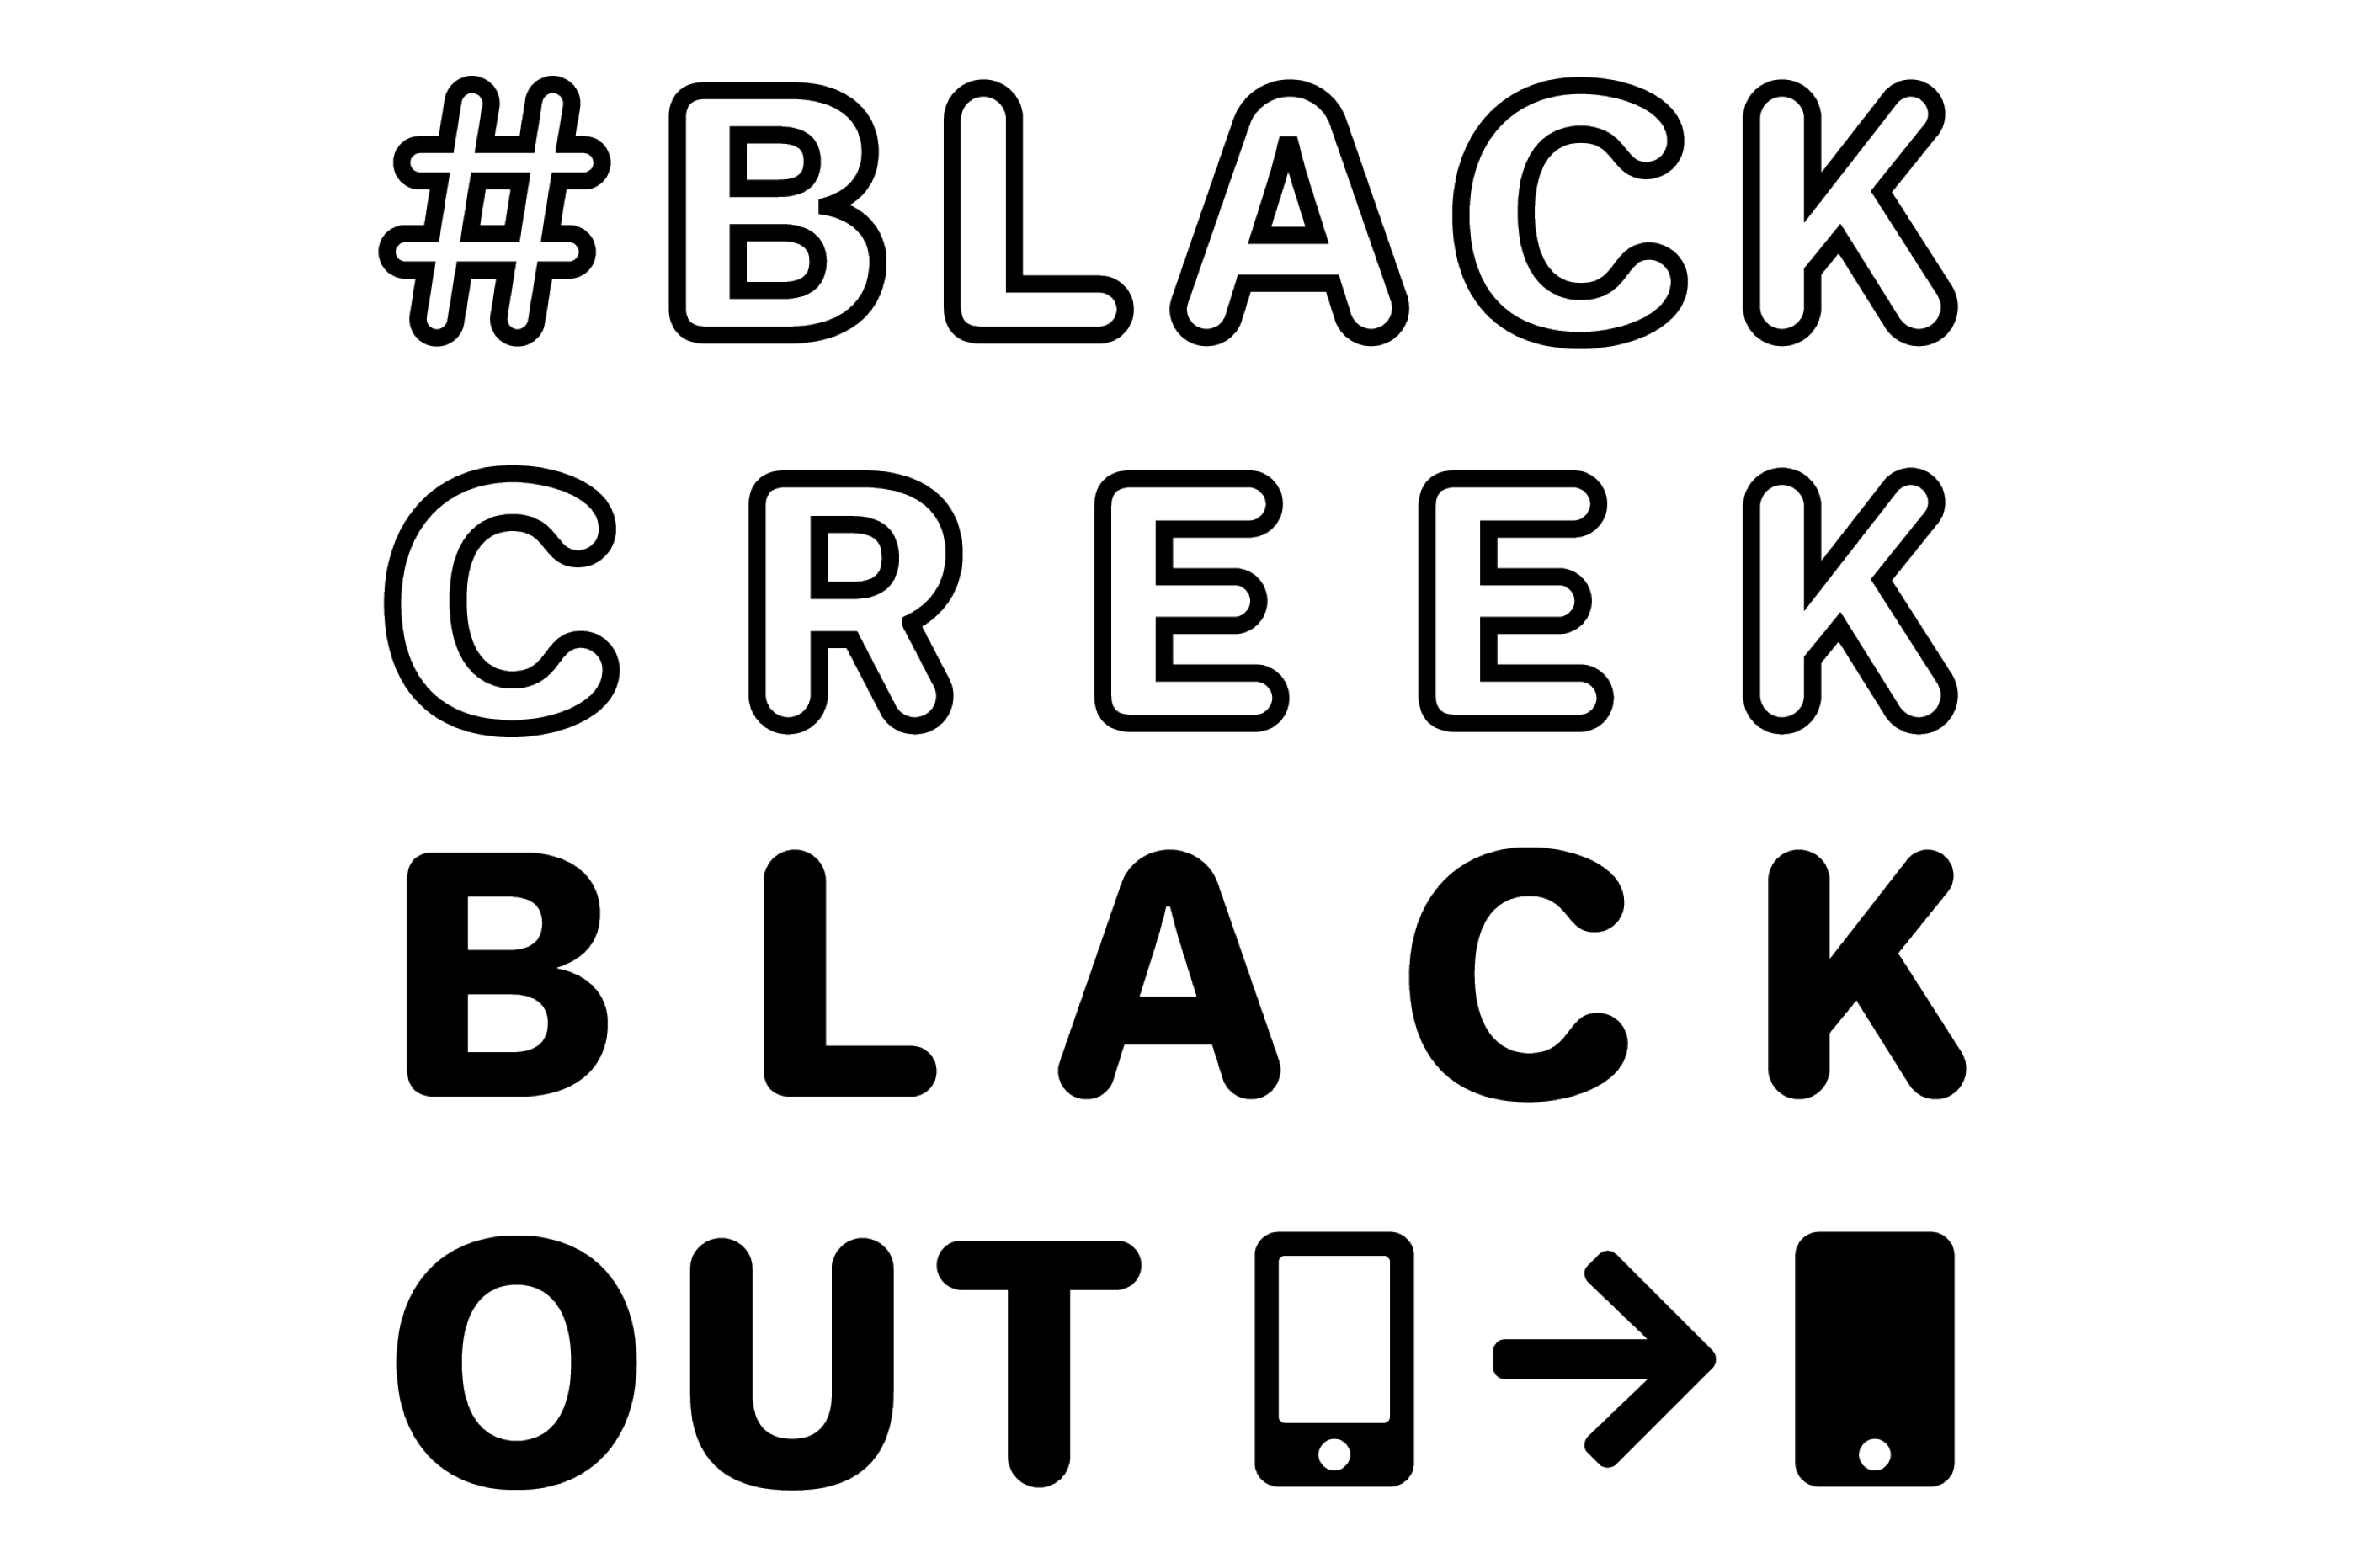 #blackcreekblackout